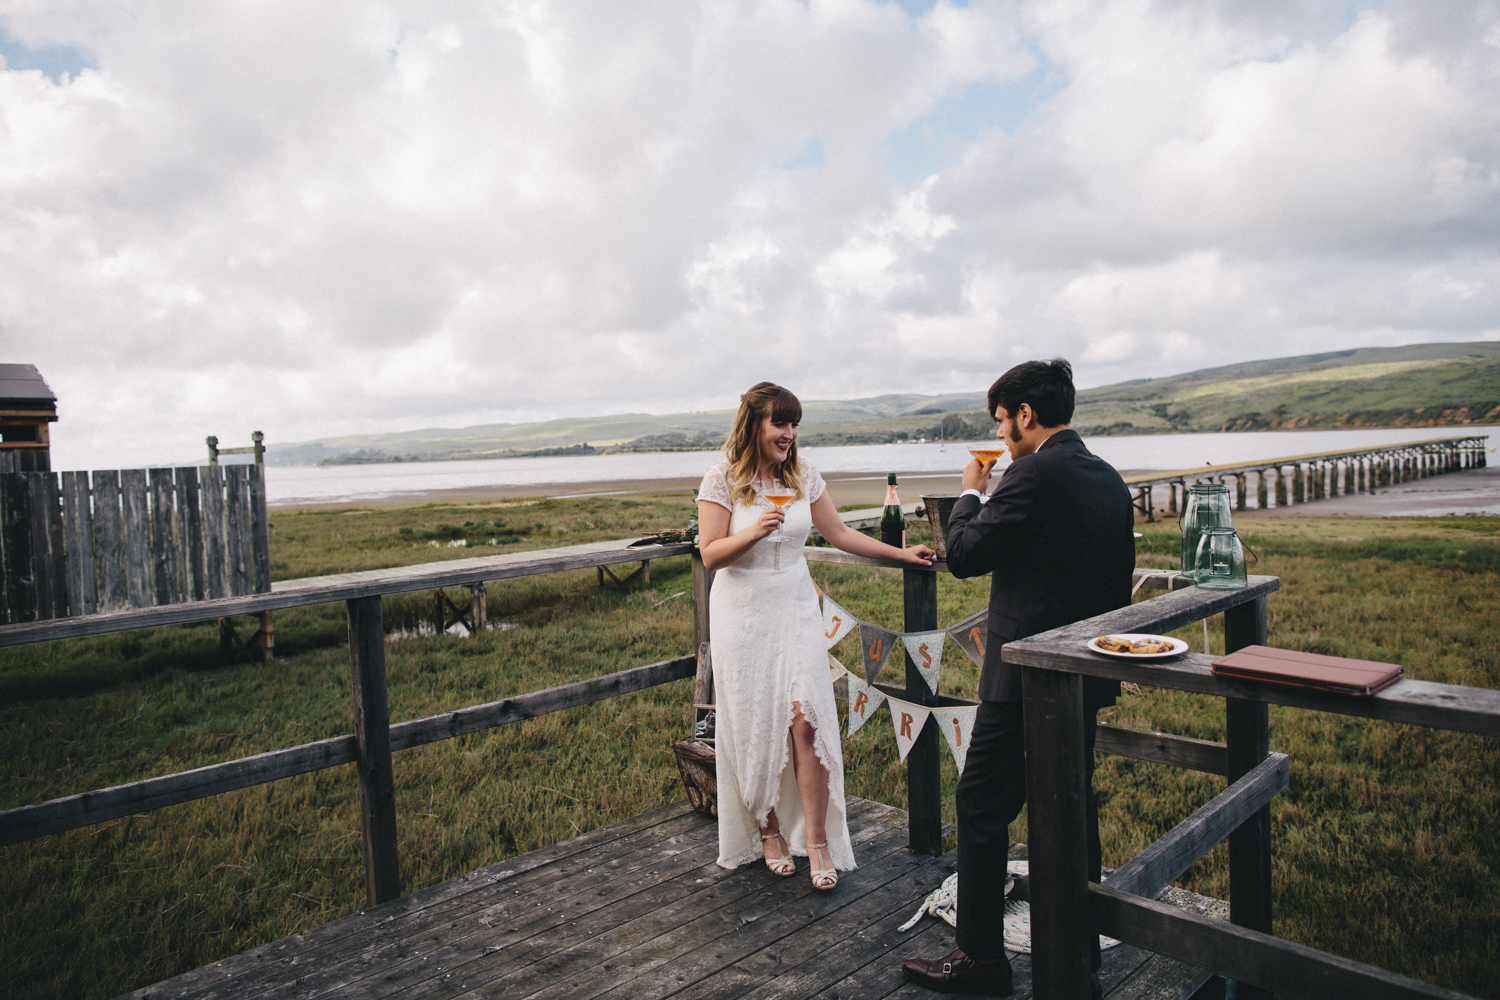 Point Reyes Inverness Wedding Photographer Rachelle Derouin-53.jpg